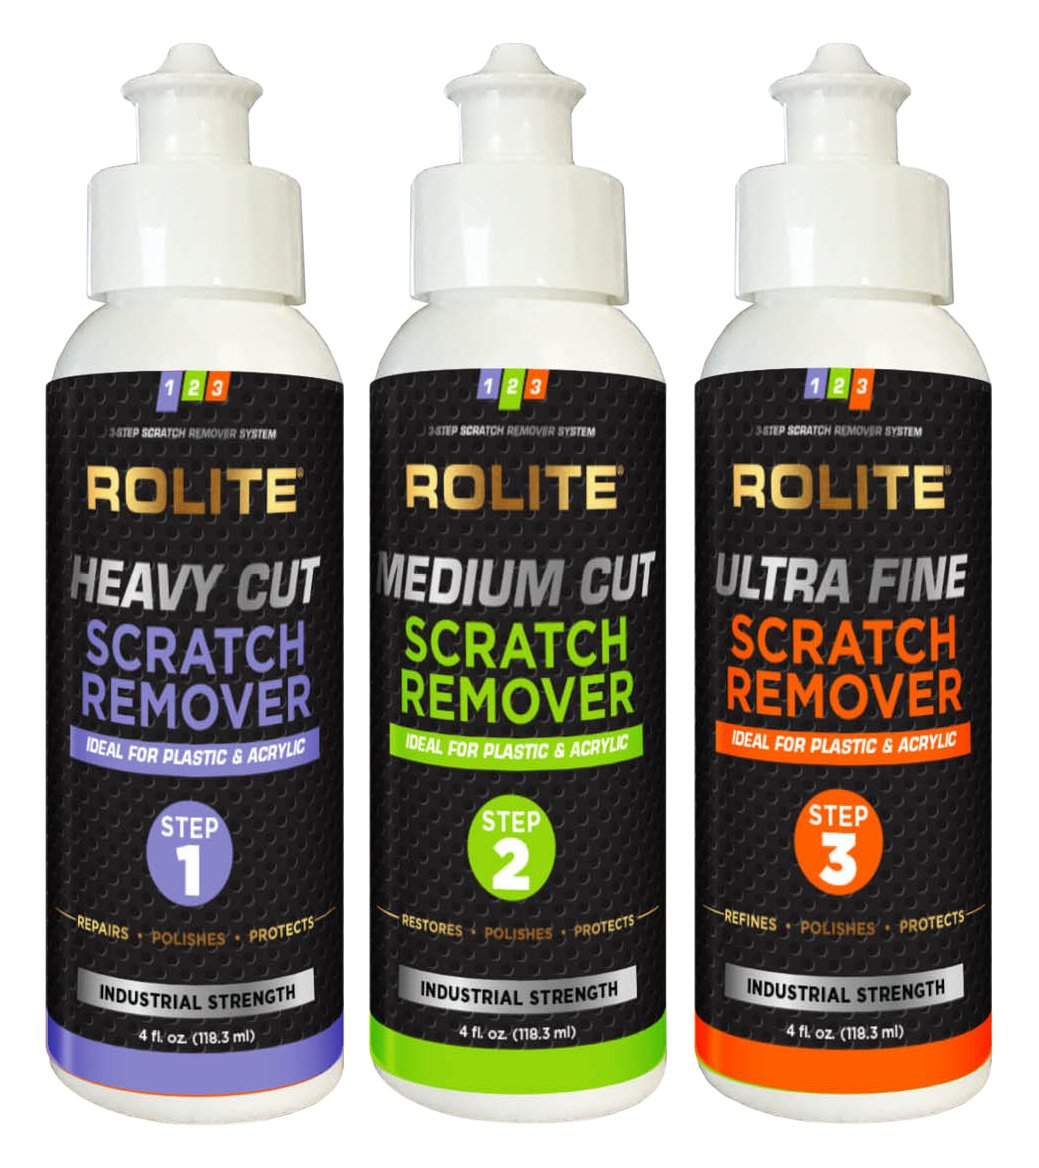 Rolite's 3 Step Scratch Removal System for Plastic & Acrylic (4 fl. oz.) with Heavy Cut, Medium Cut and Ultra Fine Combo Pack